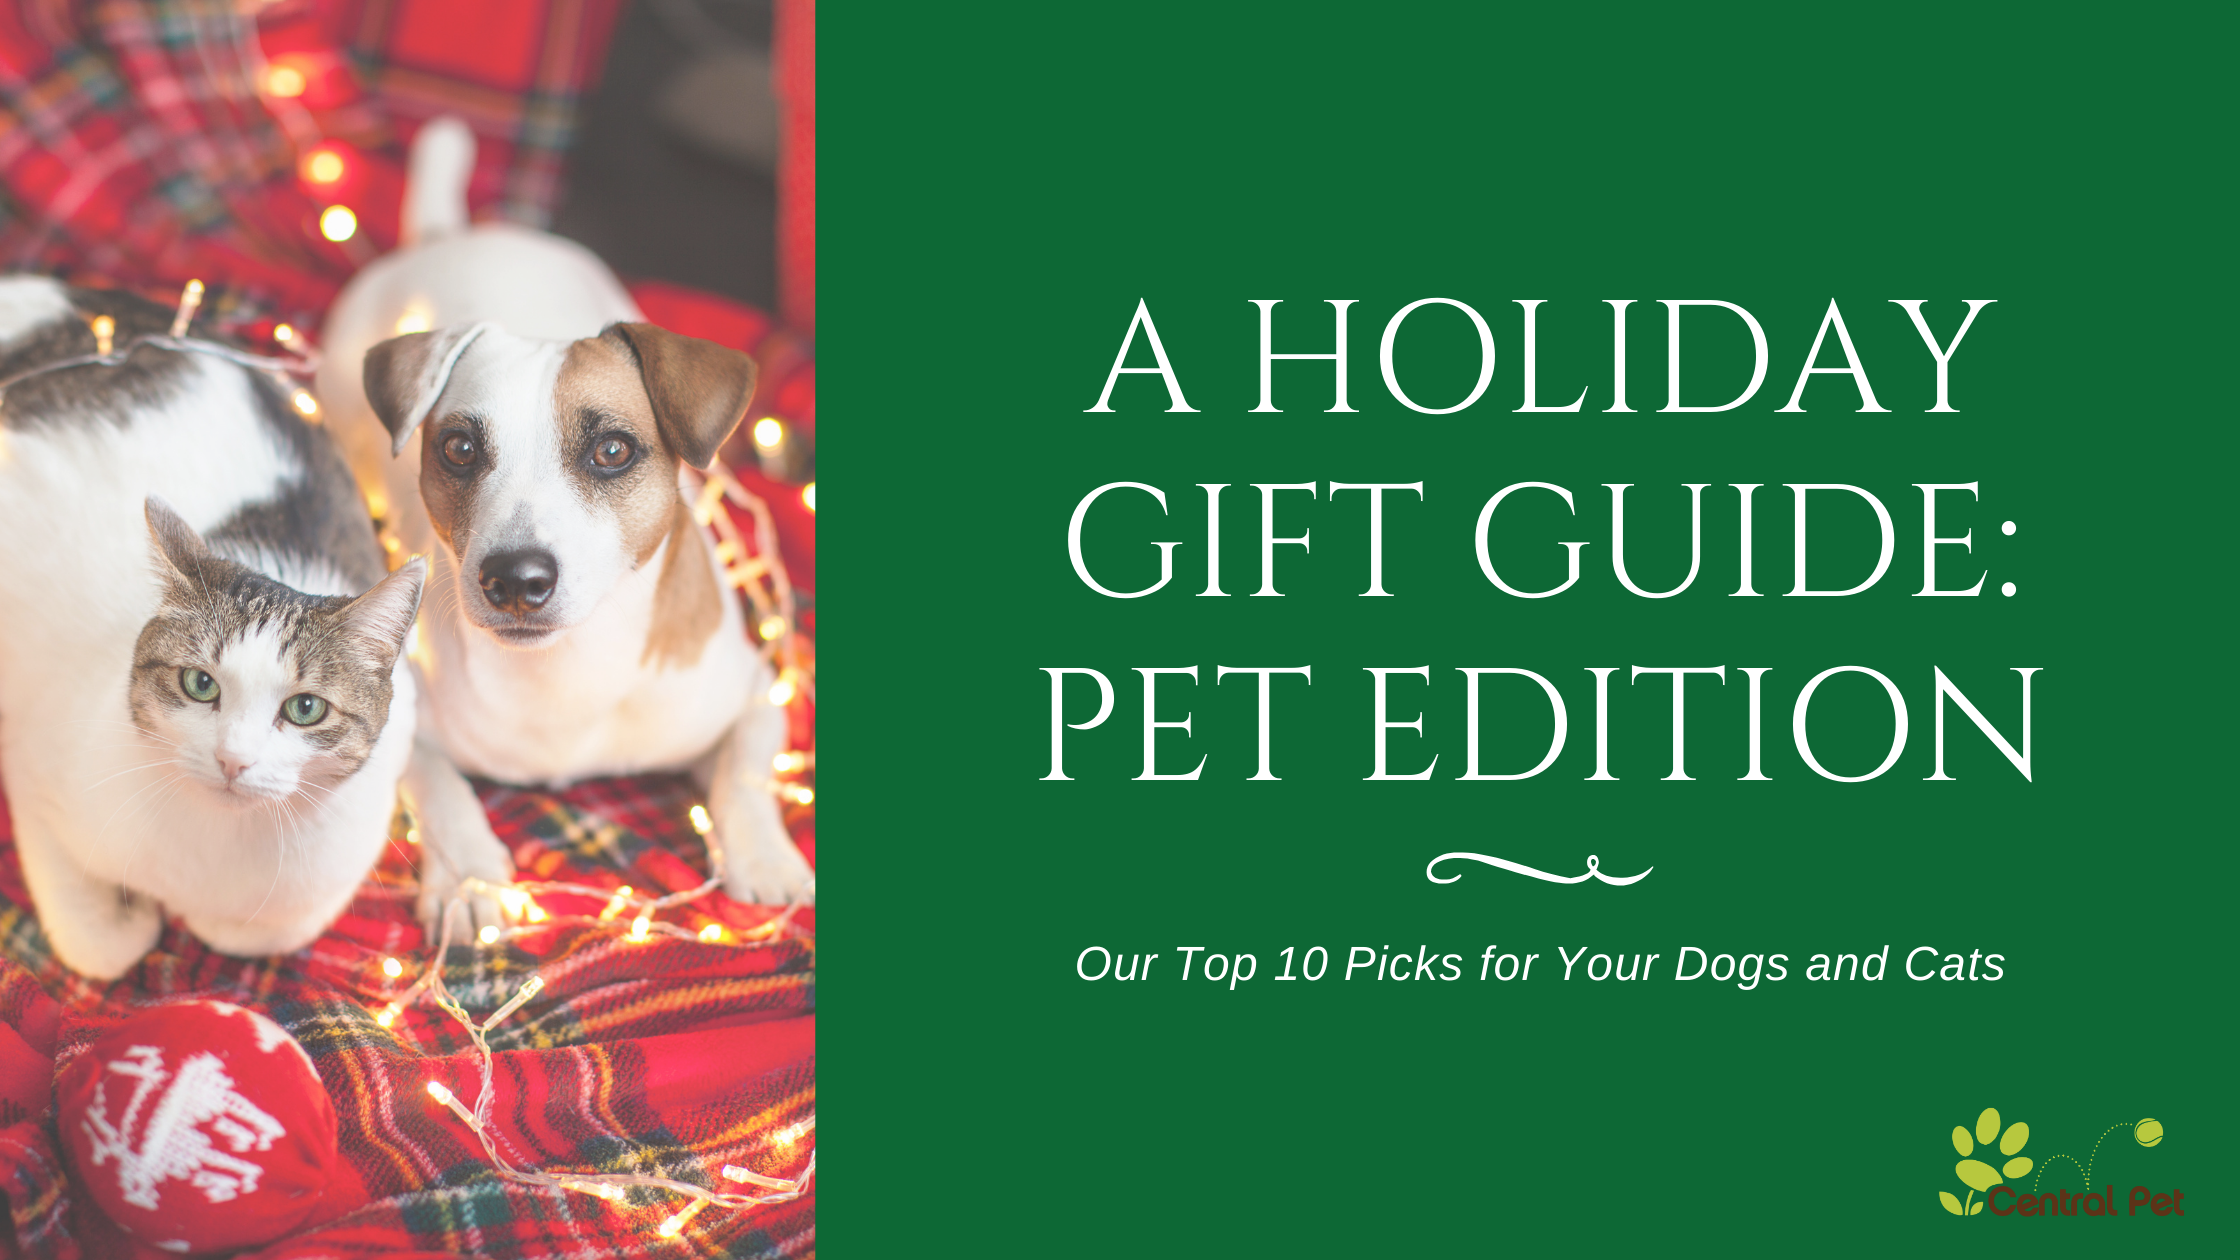 A Holiday Gift Guide: Pet Edition